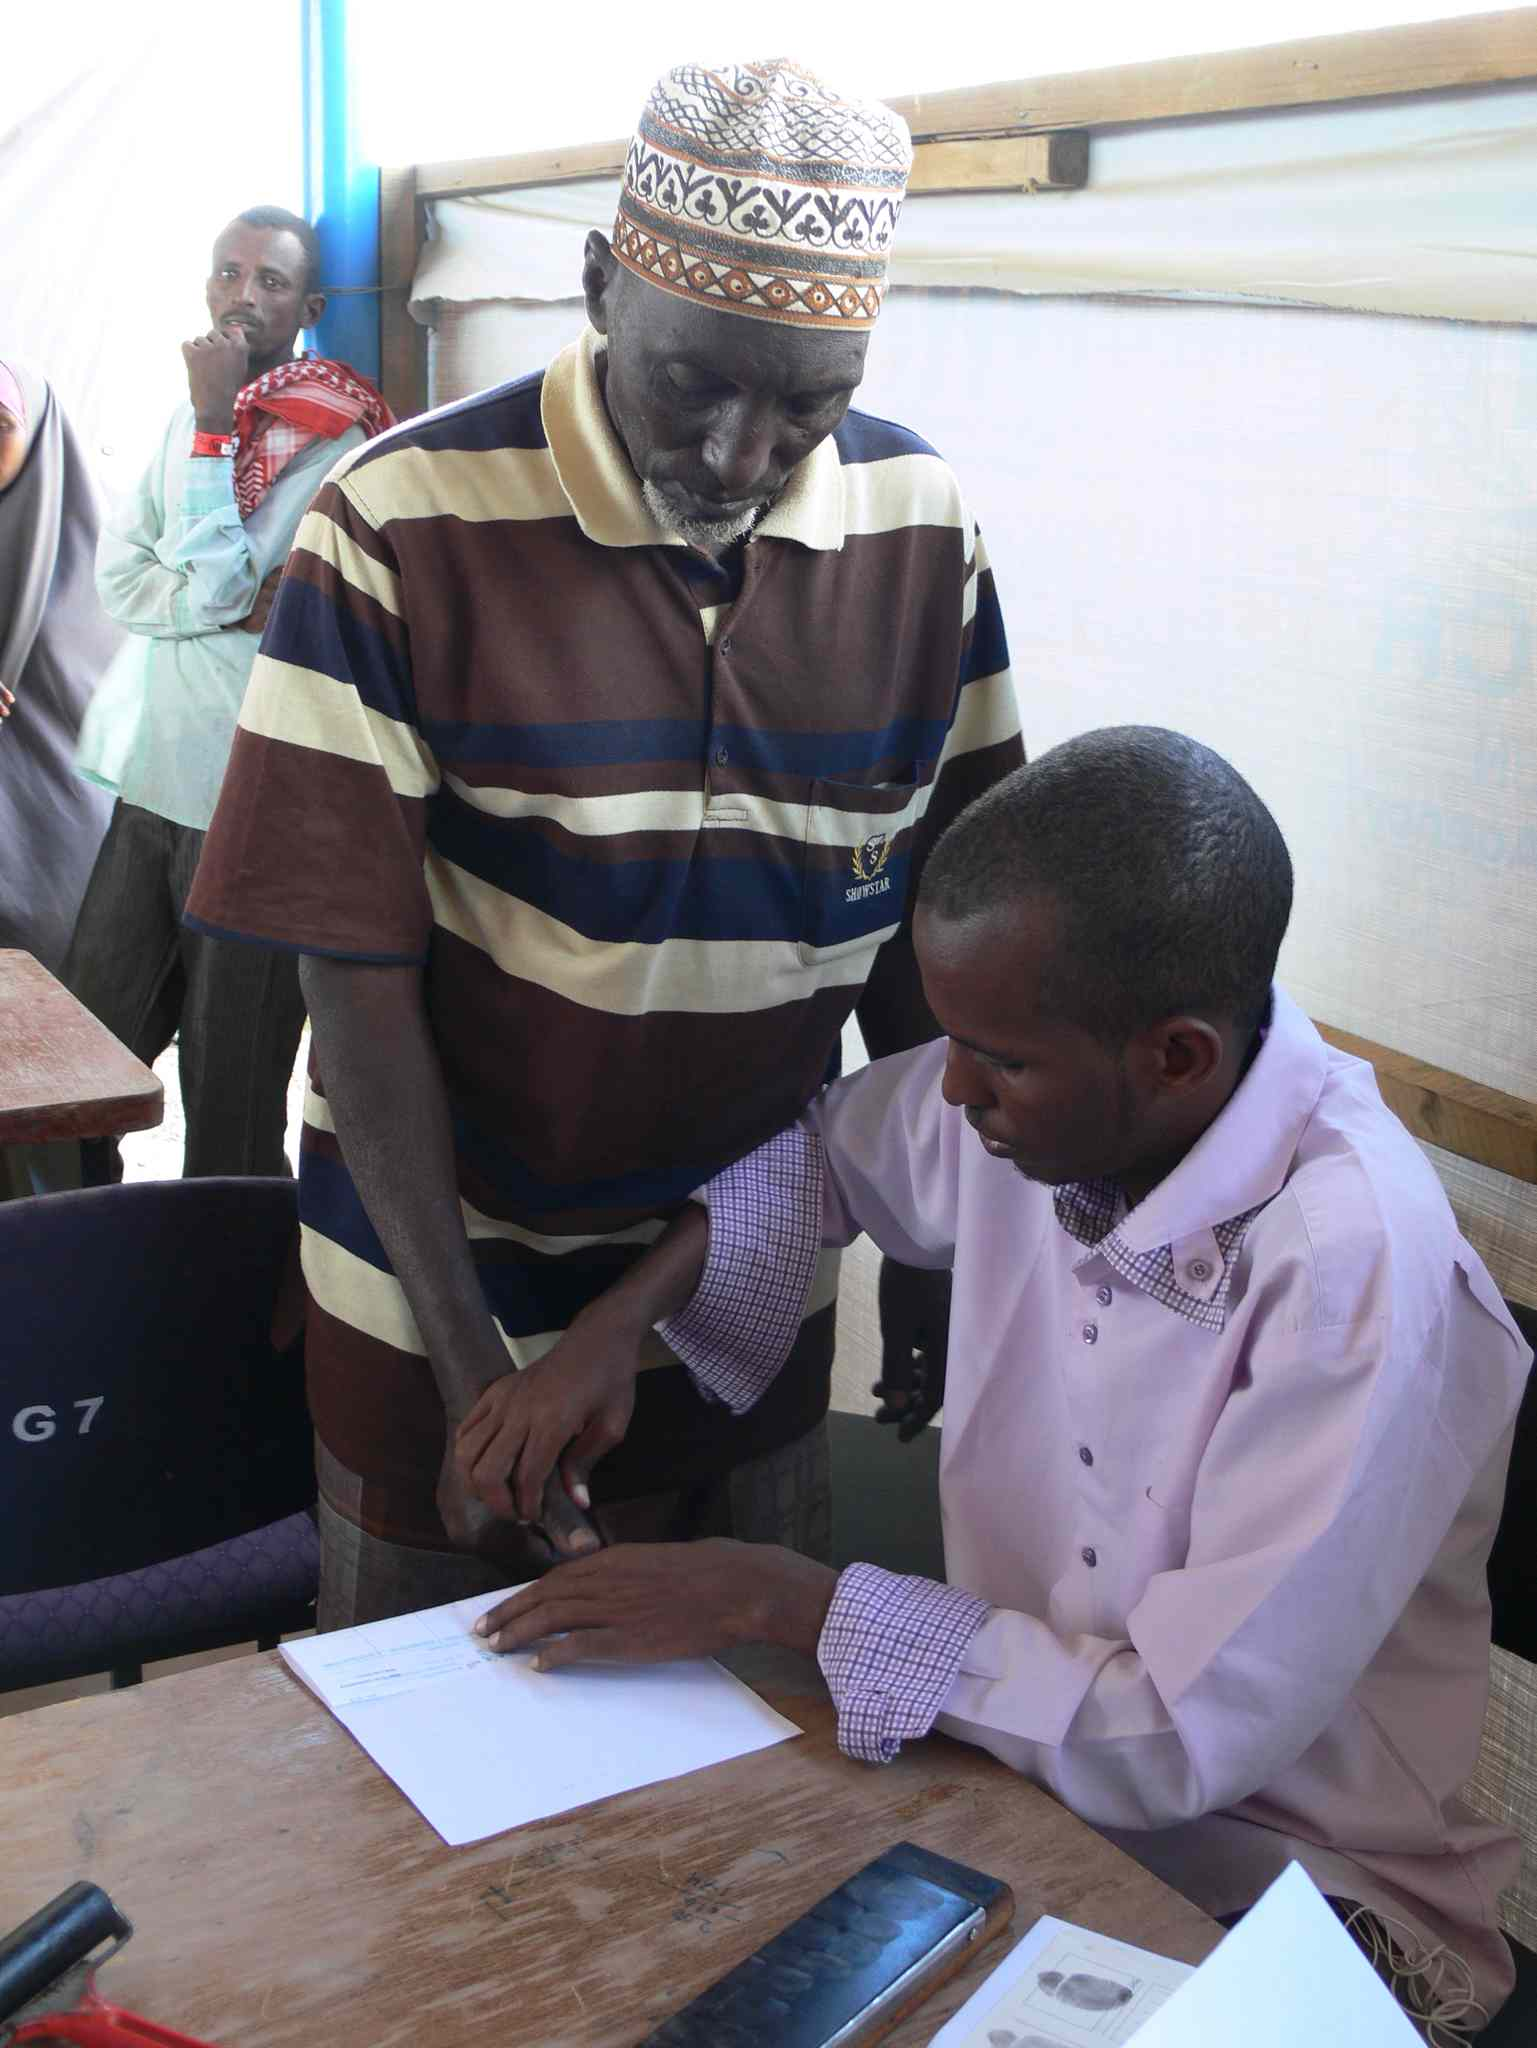 Refugees registering at Ifo 2 camp in Dadaab are finger printed the old-fashioned way during security screening. The Kenyan government  requires the finger prints for security reasons.